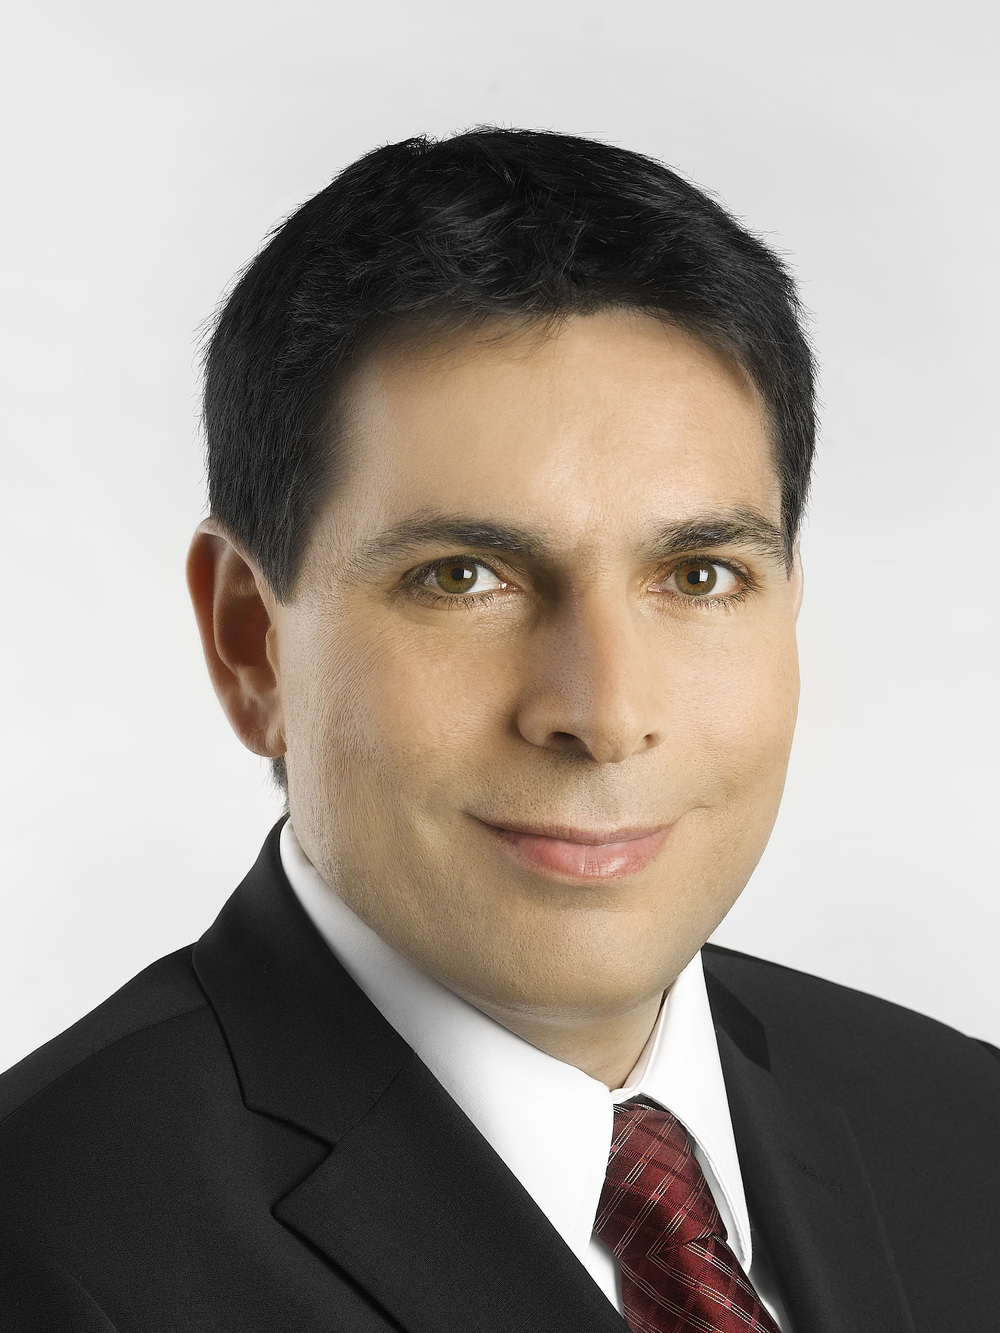 Click photo to download. Caption: Israeli Deputy Defense Minister Danny Danon, pictured, writes on the renewed Israeli-Palestinian conflict talks for JNS.org. Credit: Darko via Wikimedia Commons.